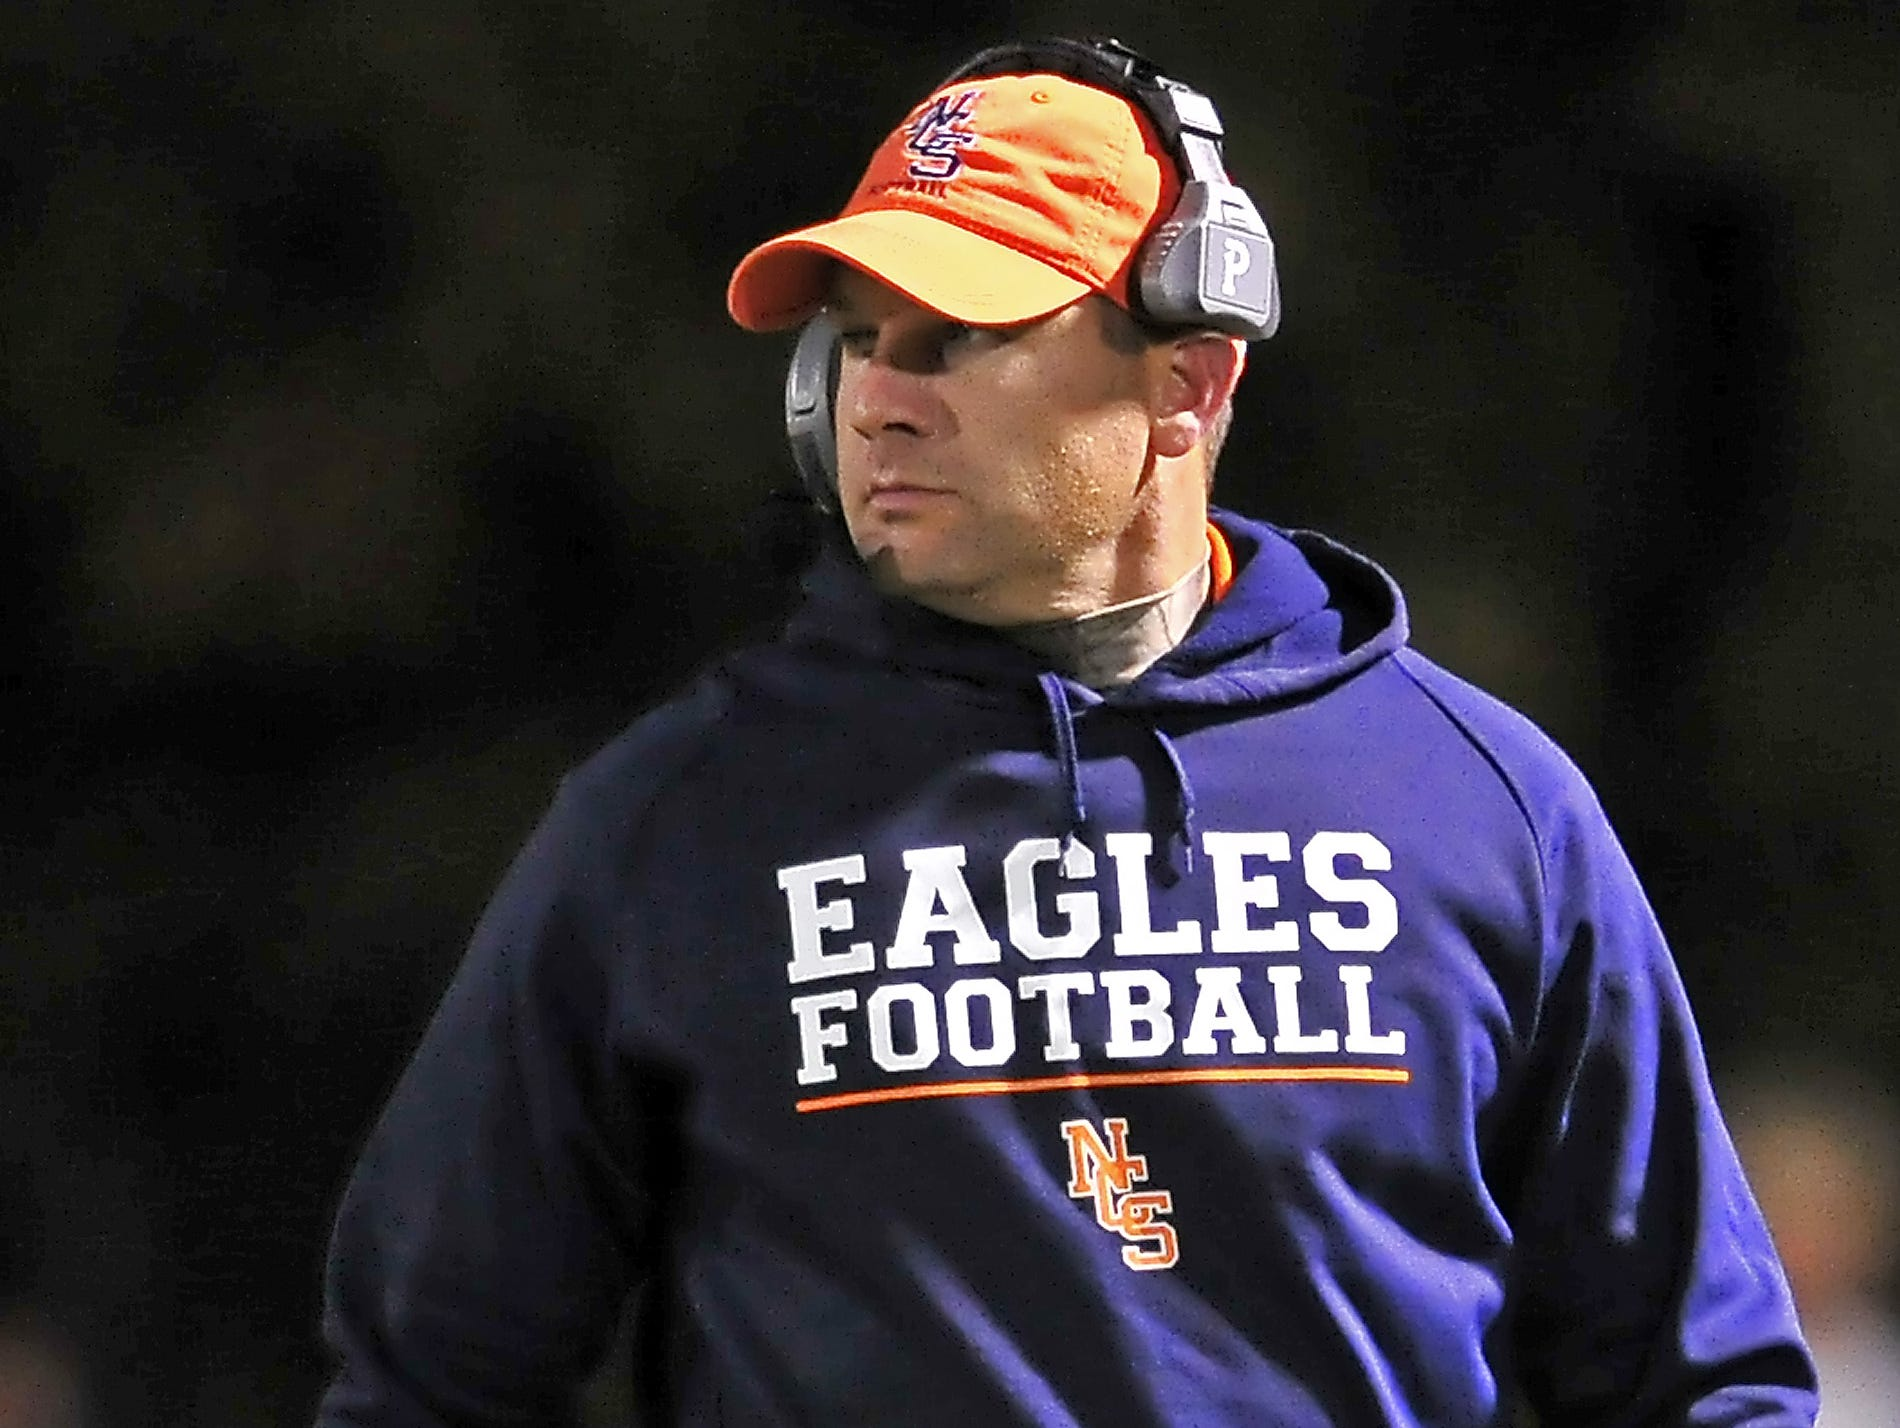 Nashville Christian is 62-16 since Coach Jeff Brothers took the helm in 2010.